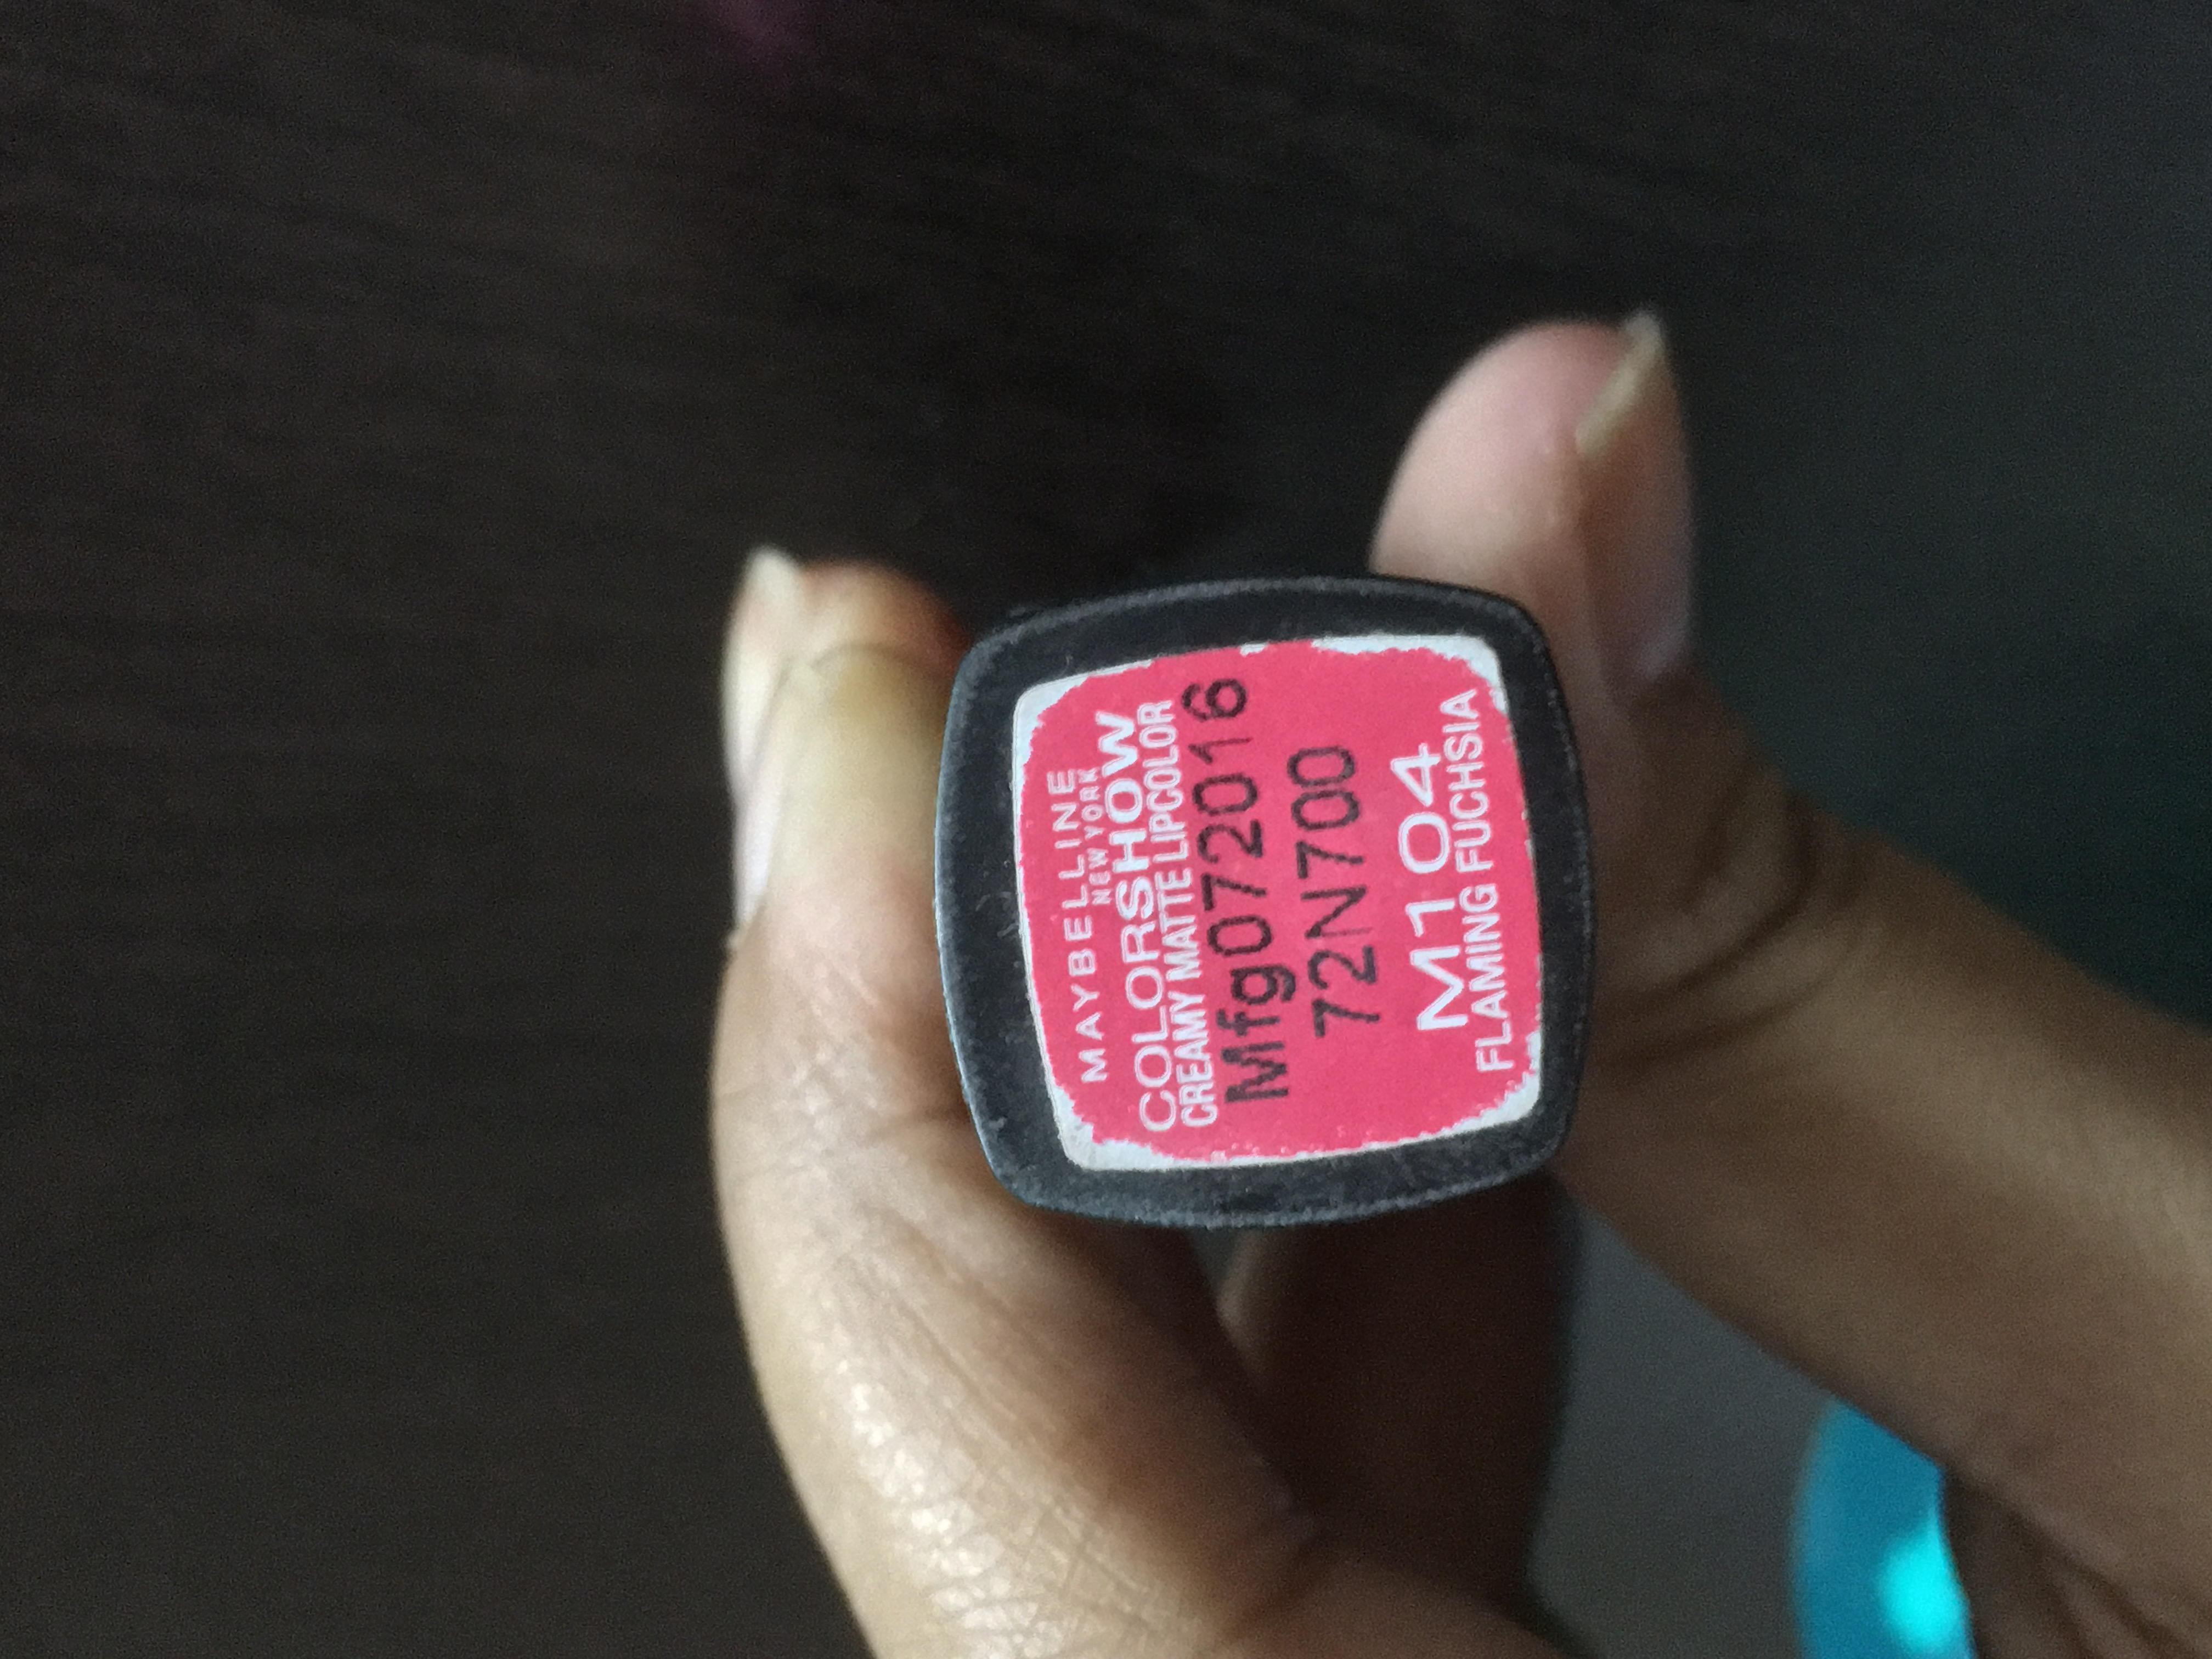 Maybelline New York Color Show Lipstick pic 2-Not a great product-By sayanikarmakar